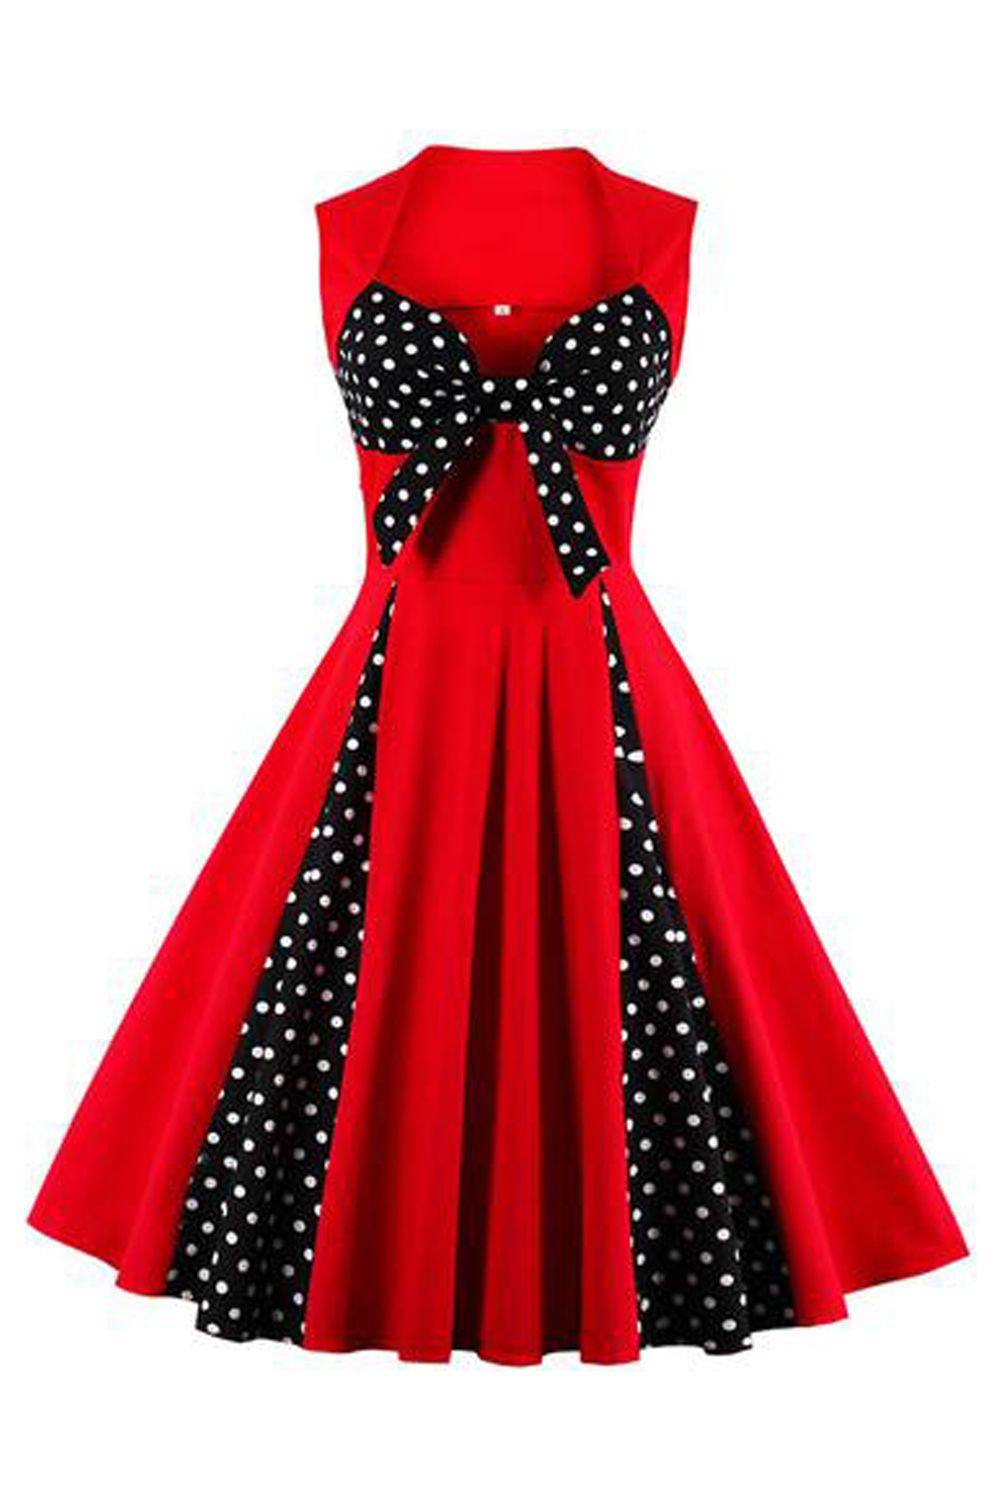 Adorable and feminine in our Atomic Red and Black Rockabilly ...